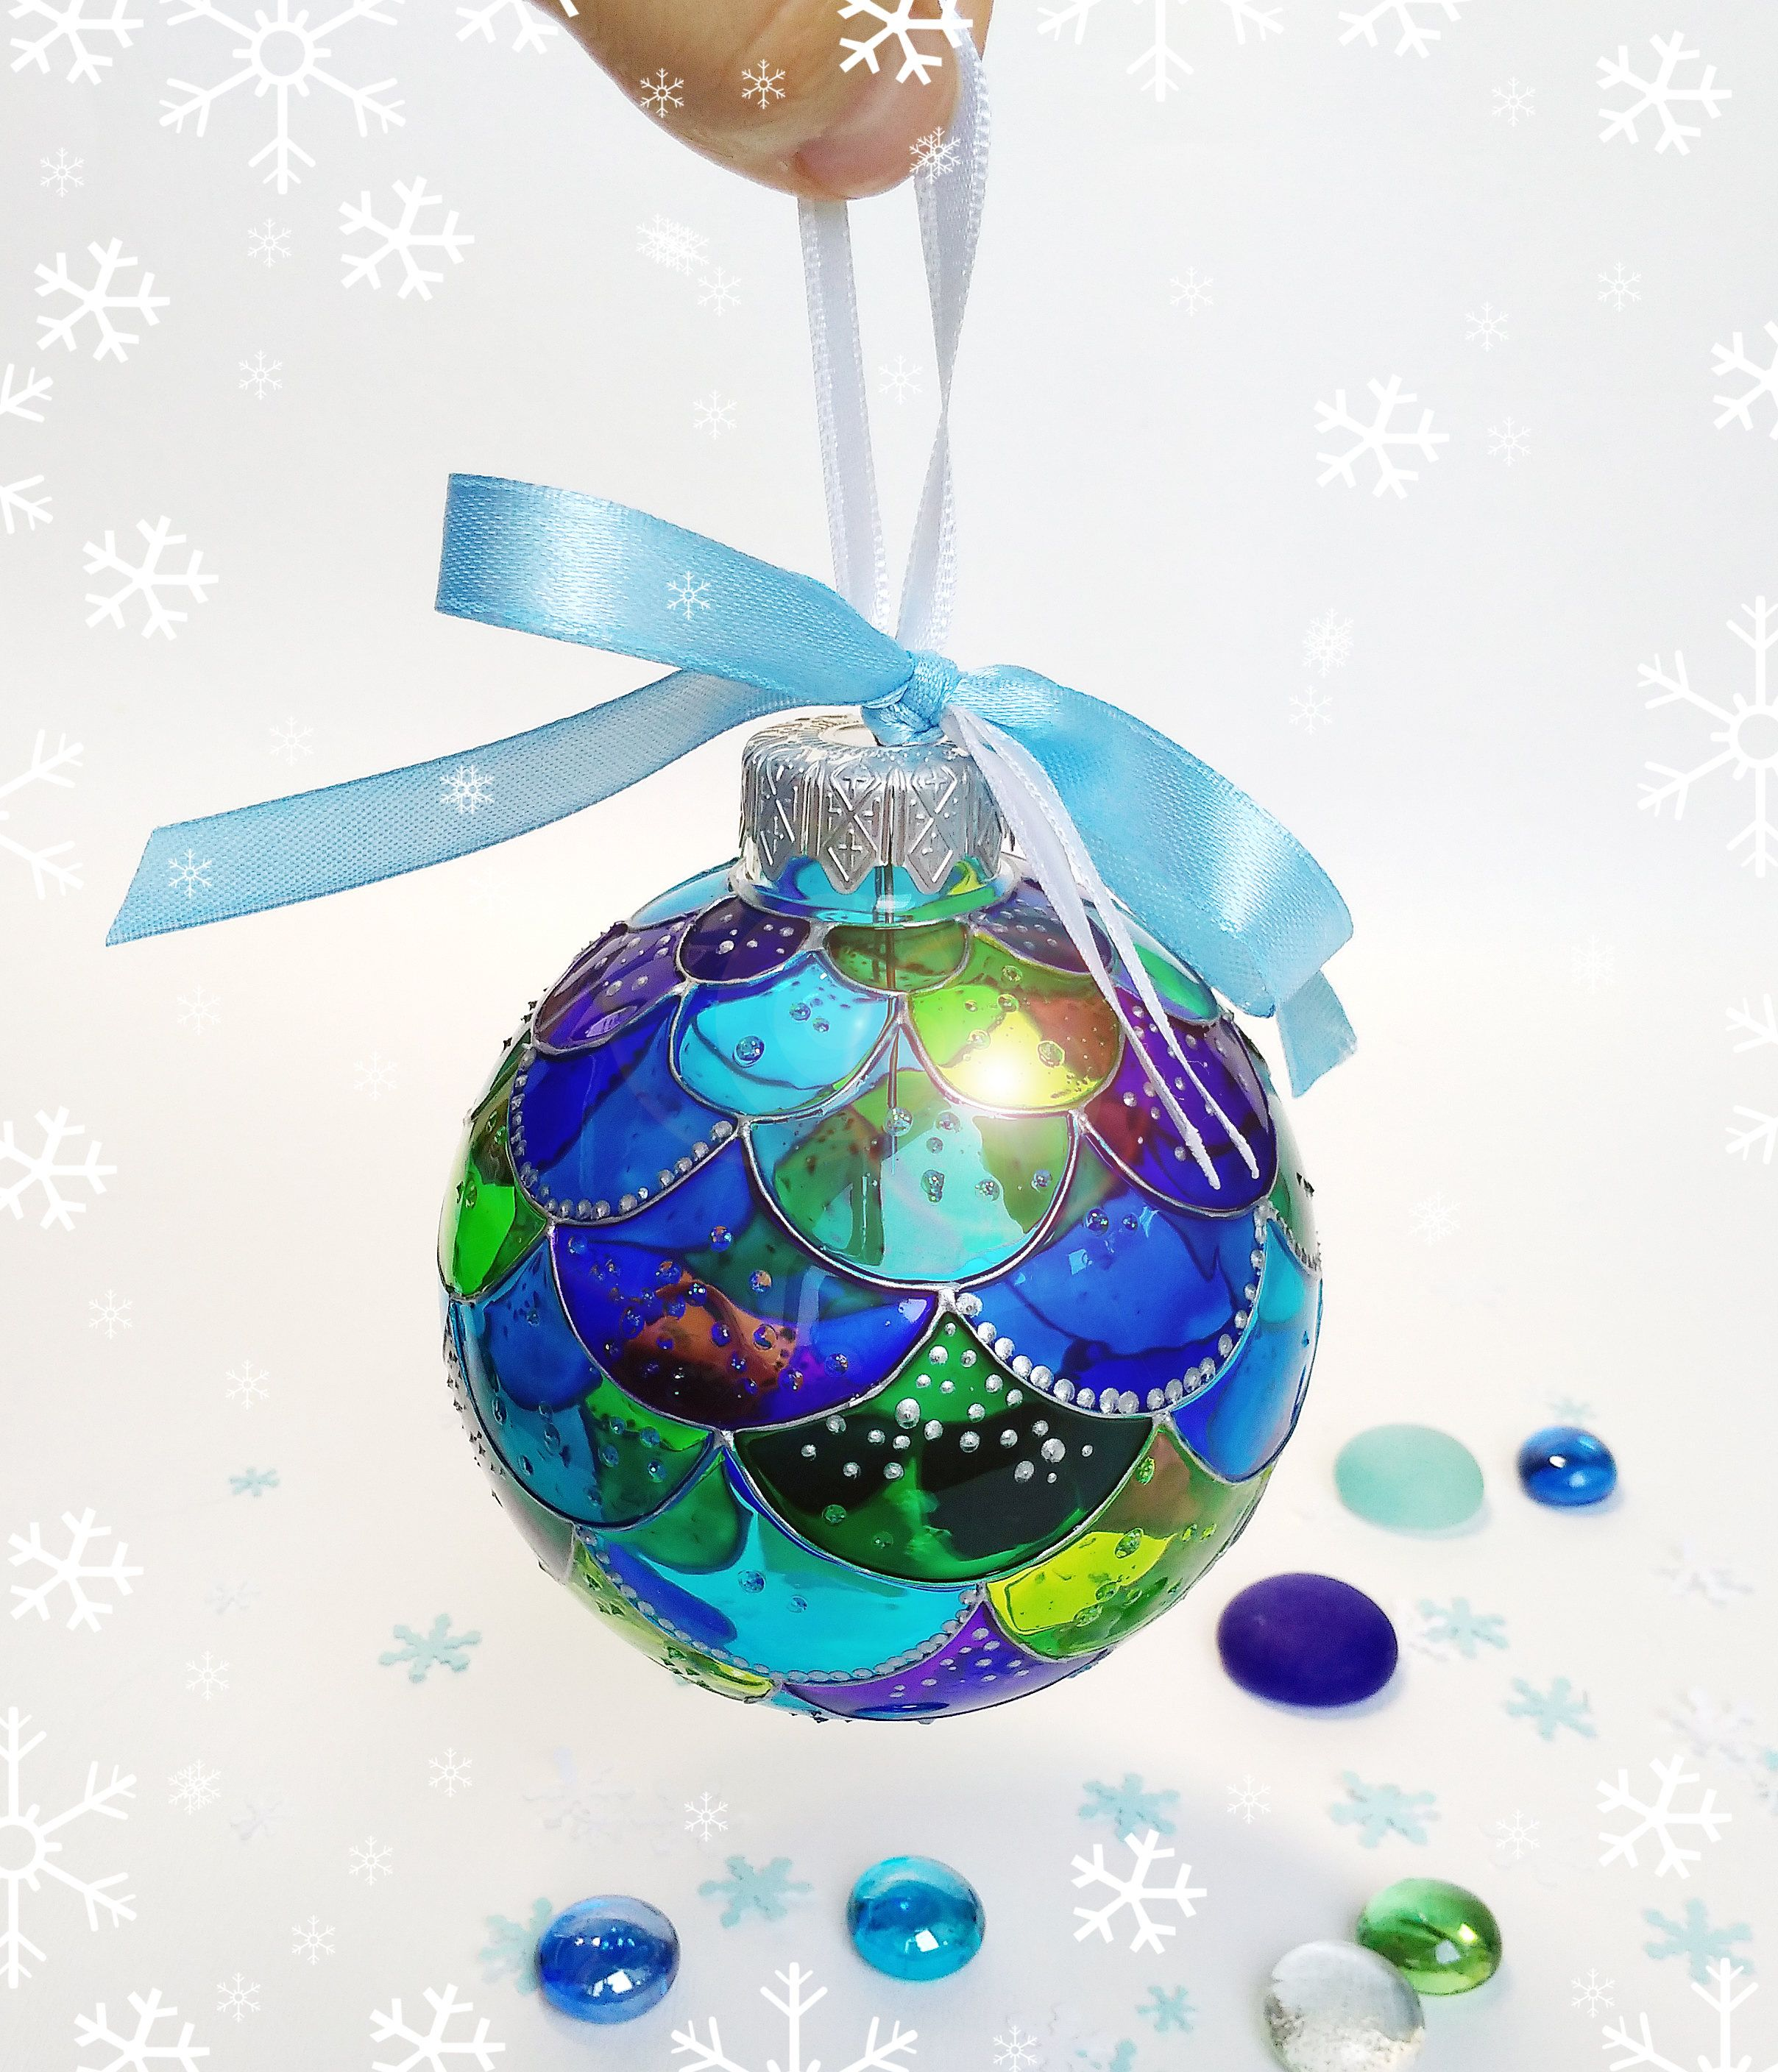 Christmas Mermaid Ornament Hand Painted Clear Glass Ball Christmas Tree Bubbles Mermaid Decoration Mermaid Gif Mermaid Ornament Mermaid Decor Mermaid Christmas